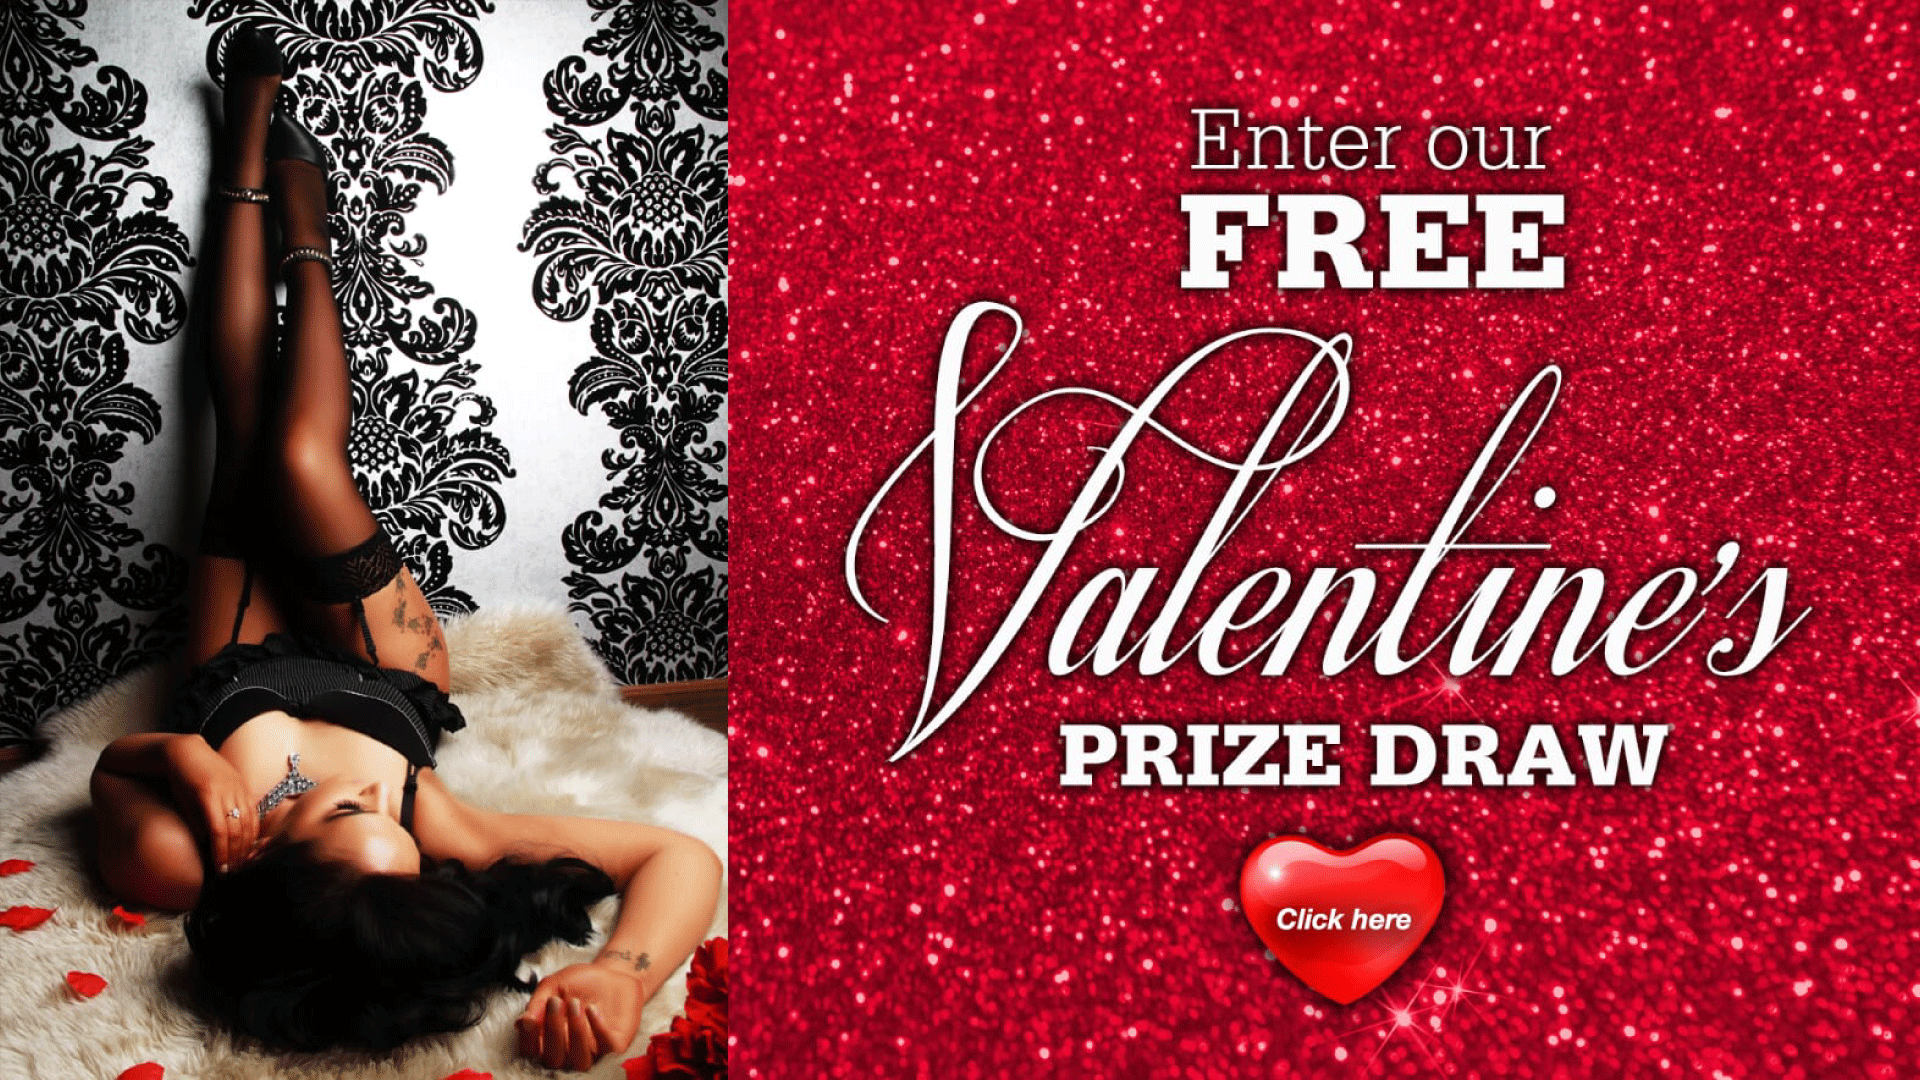 flawless-makeover-photoshoot-valentines-prize-draw